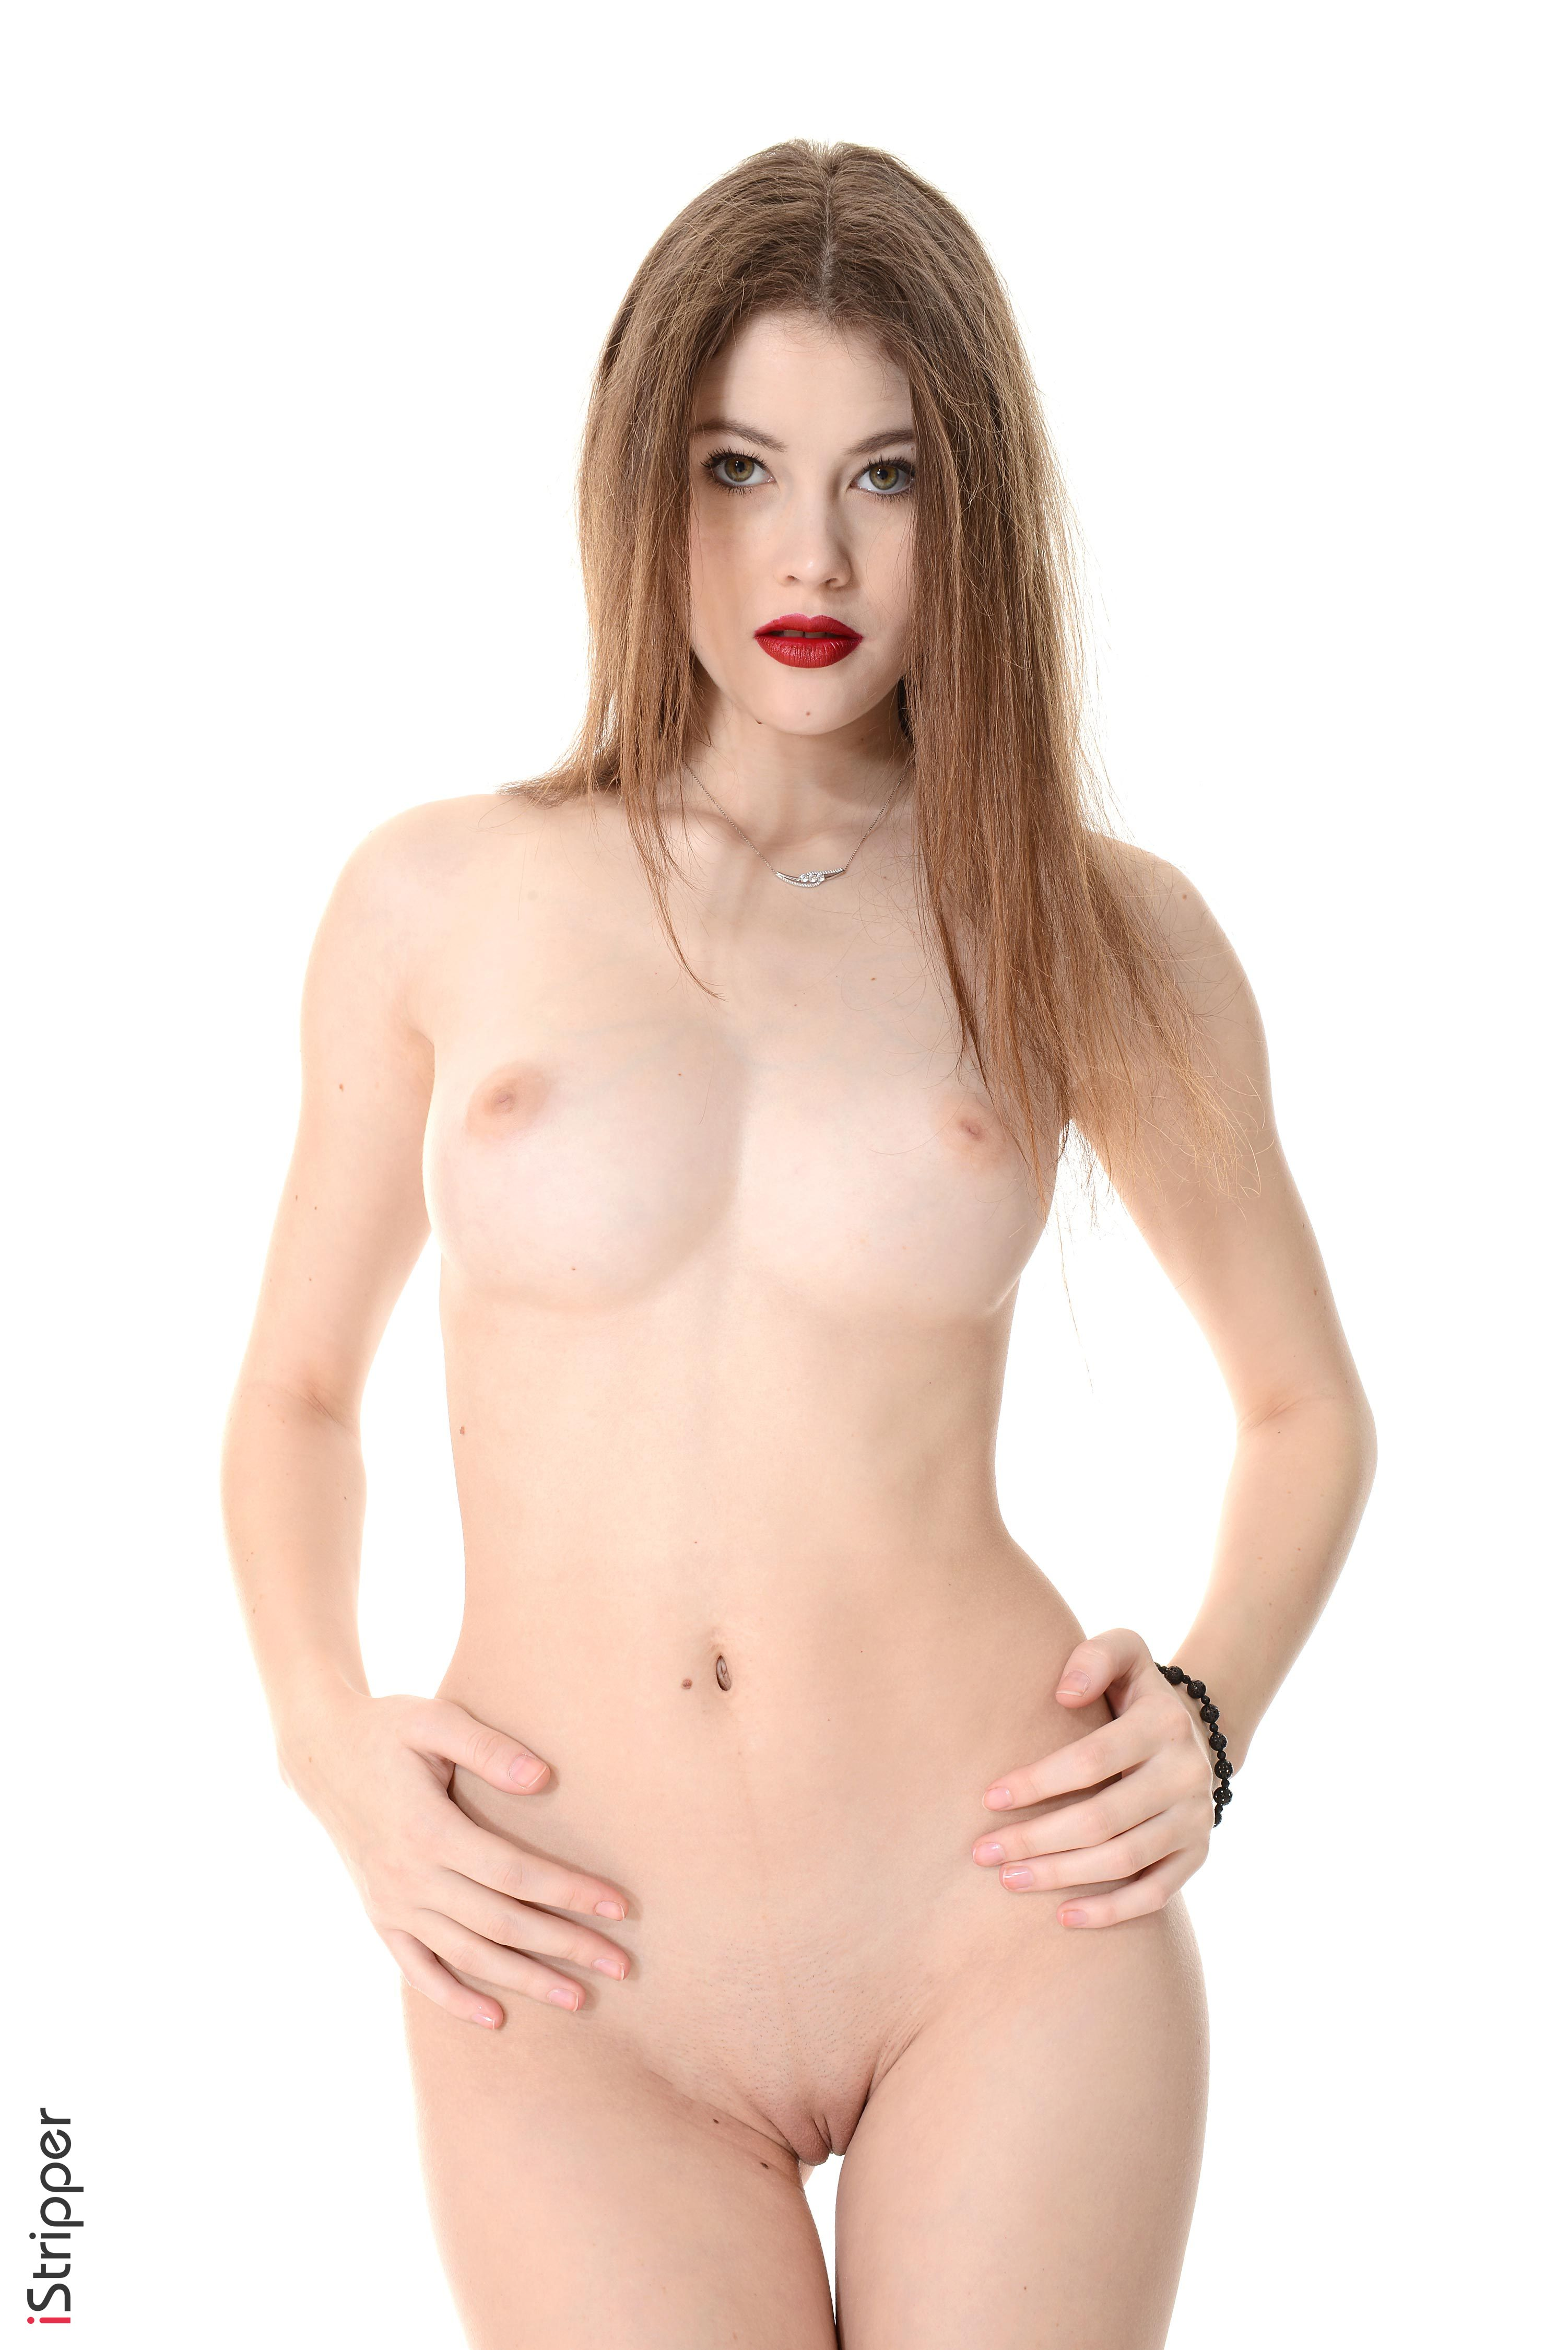 pictures of pussy for free